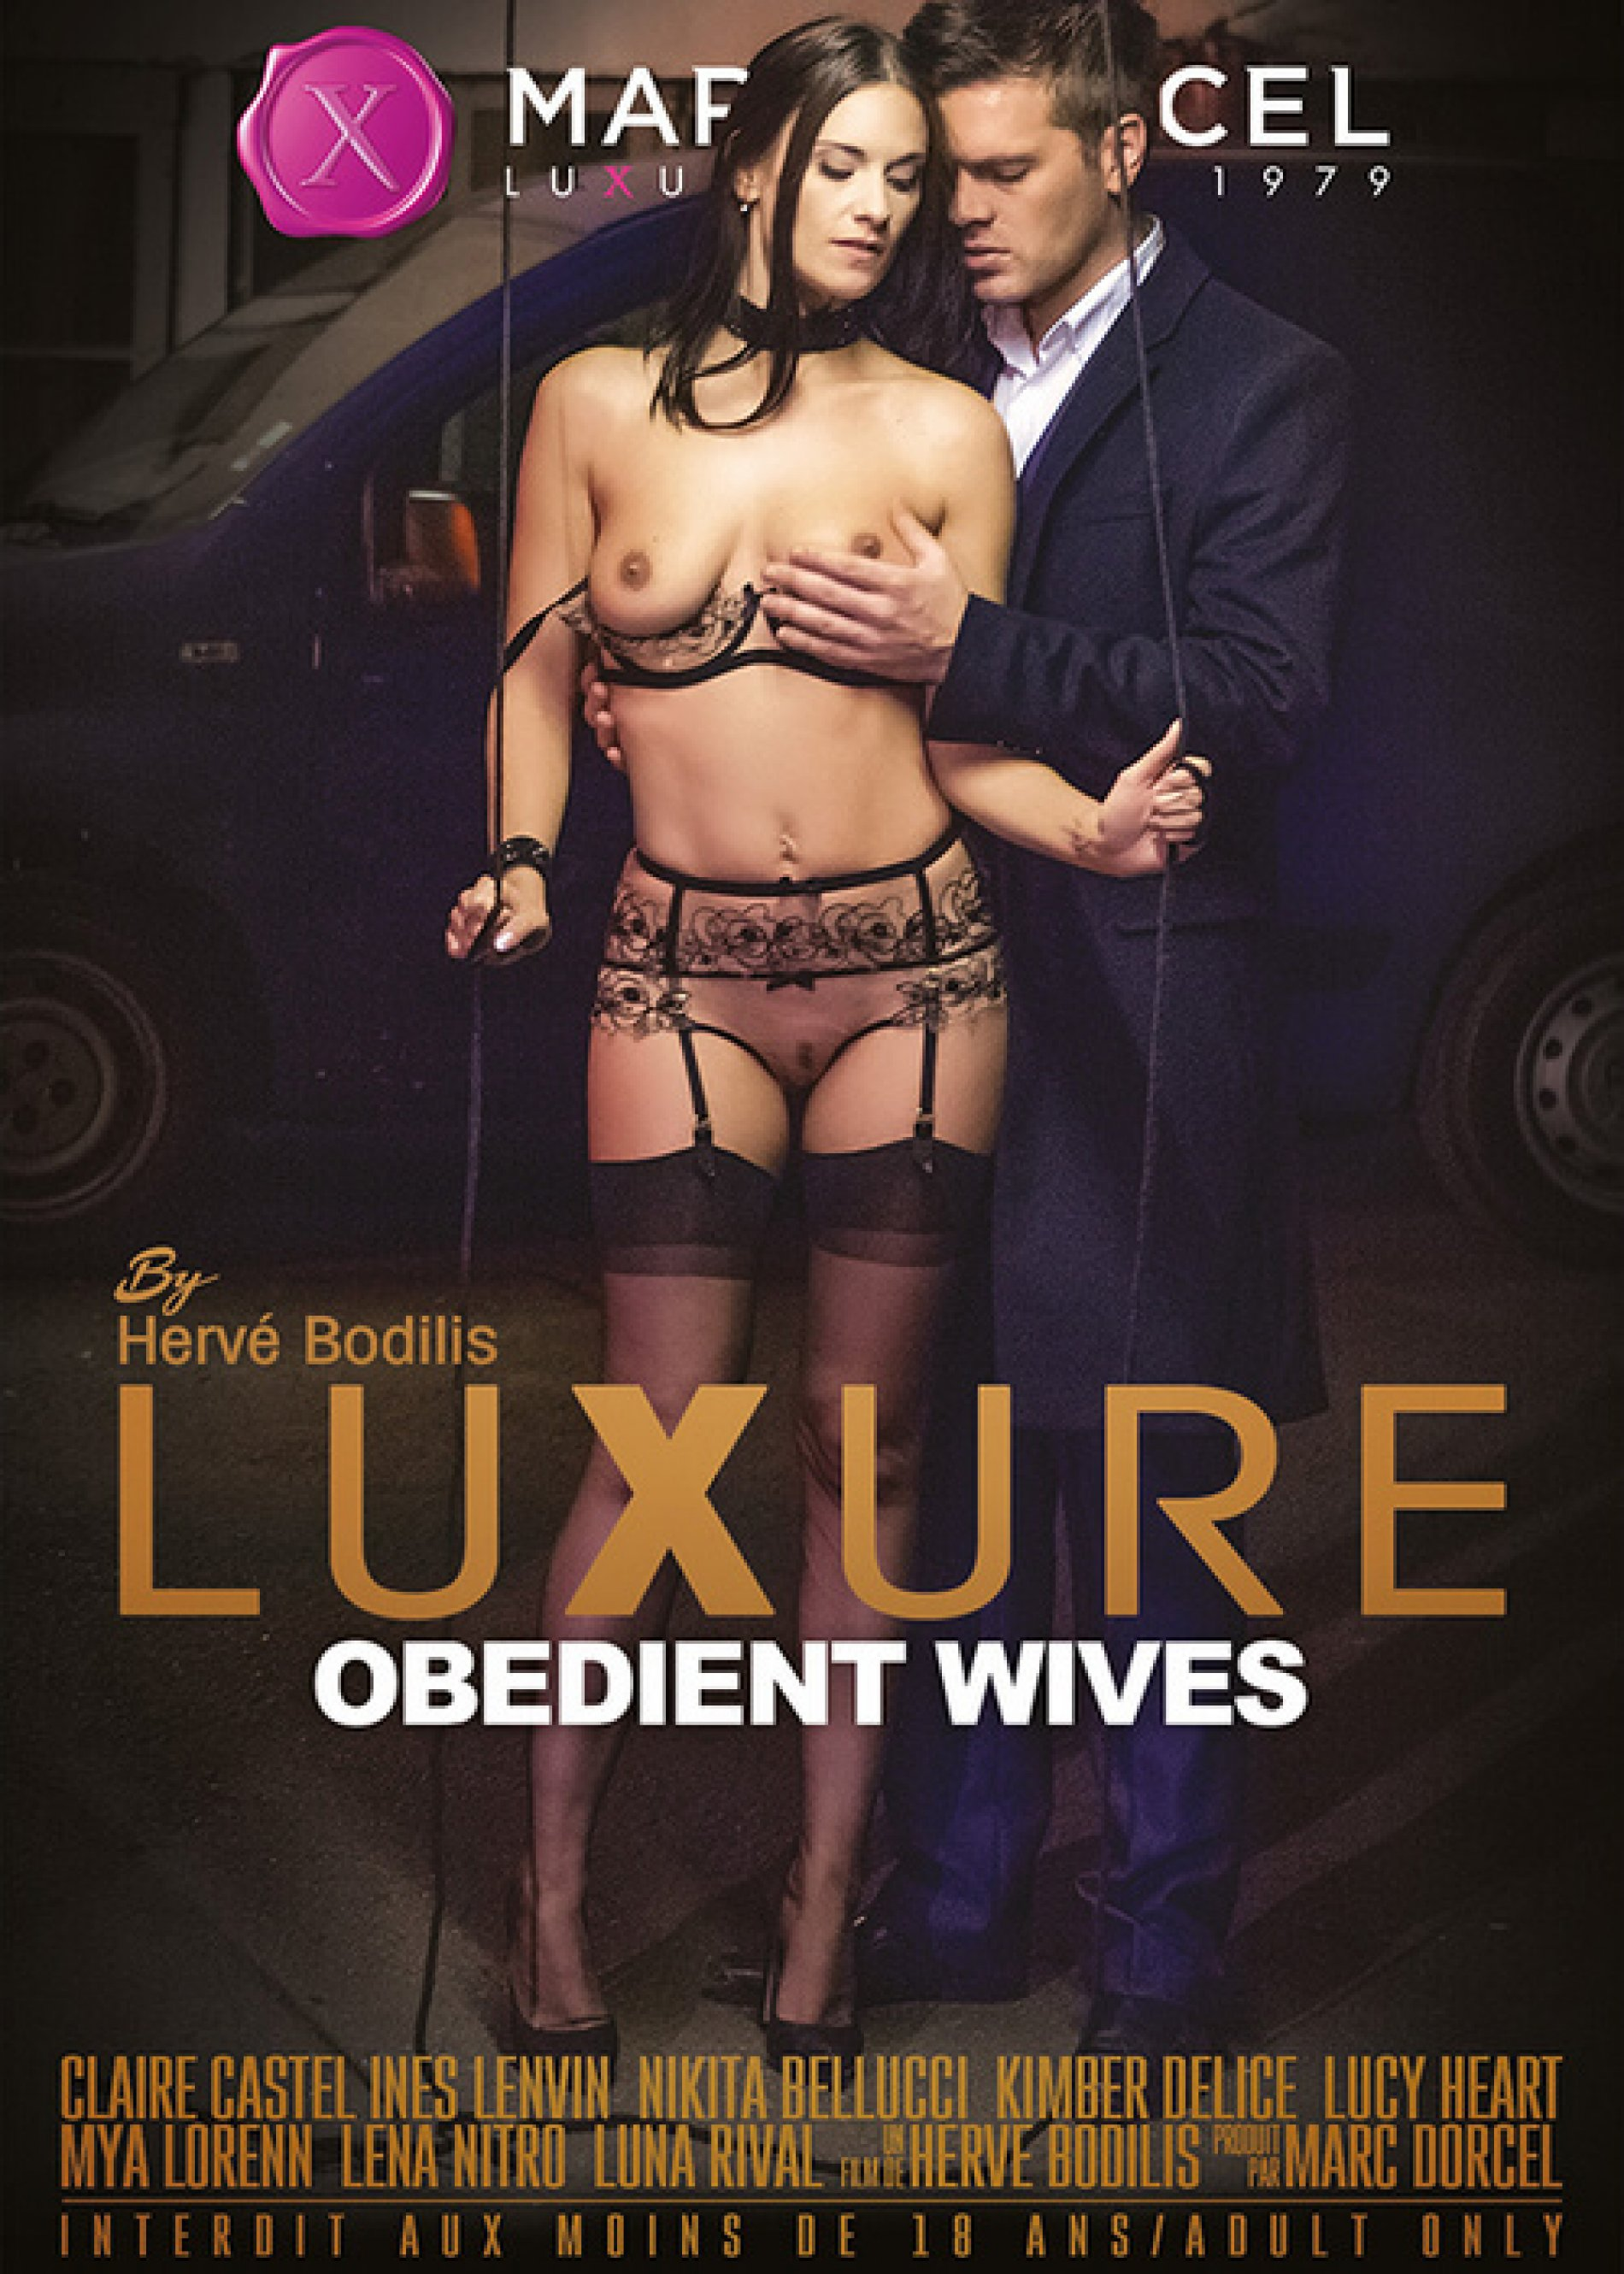 Luxure – obedient wives